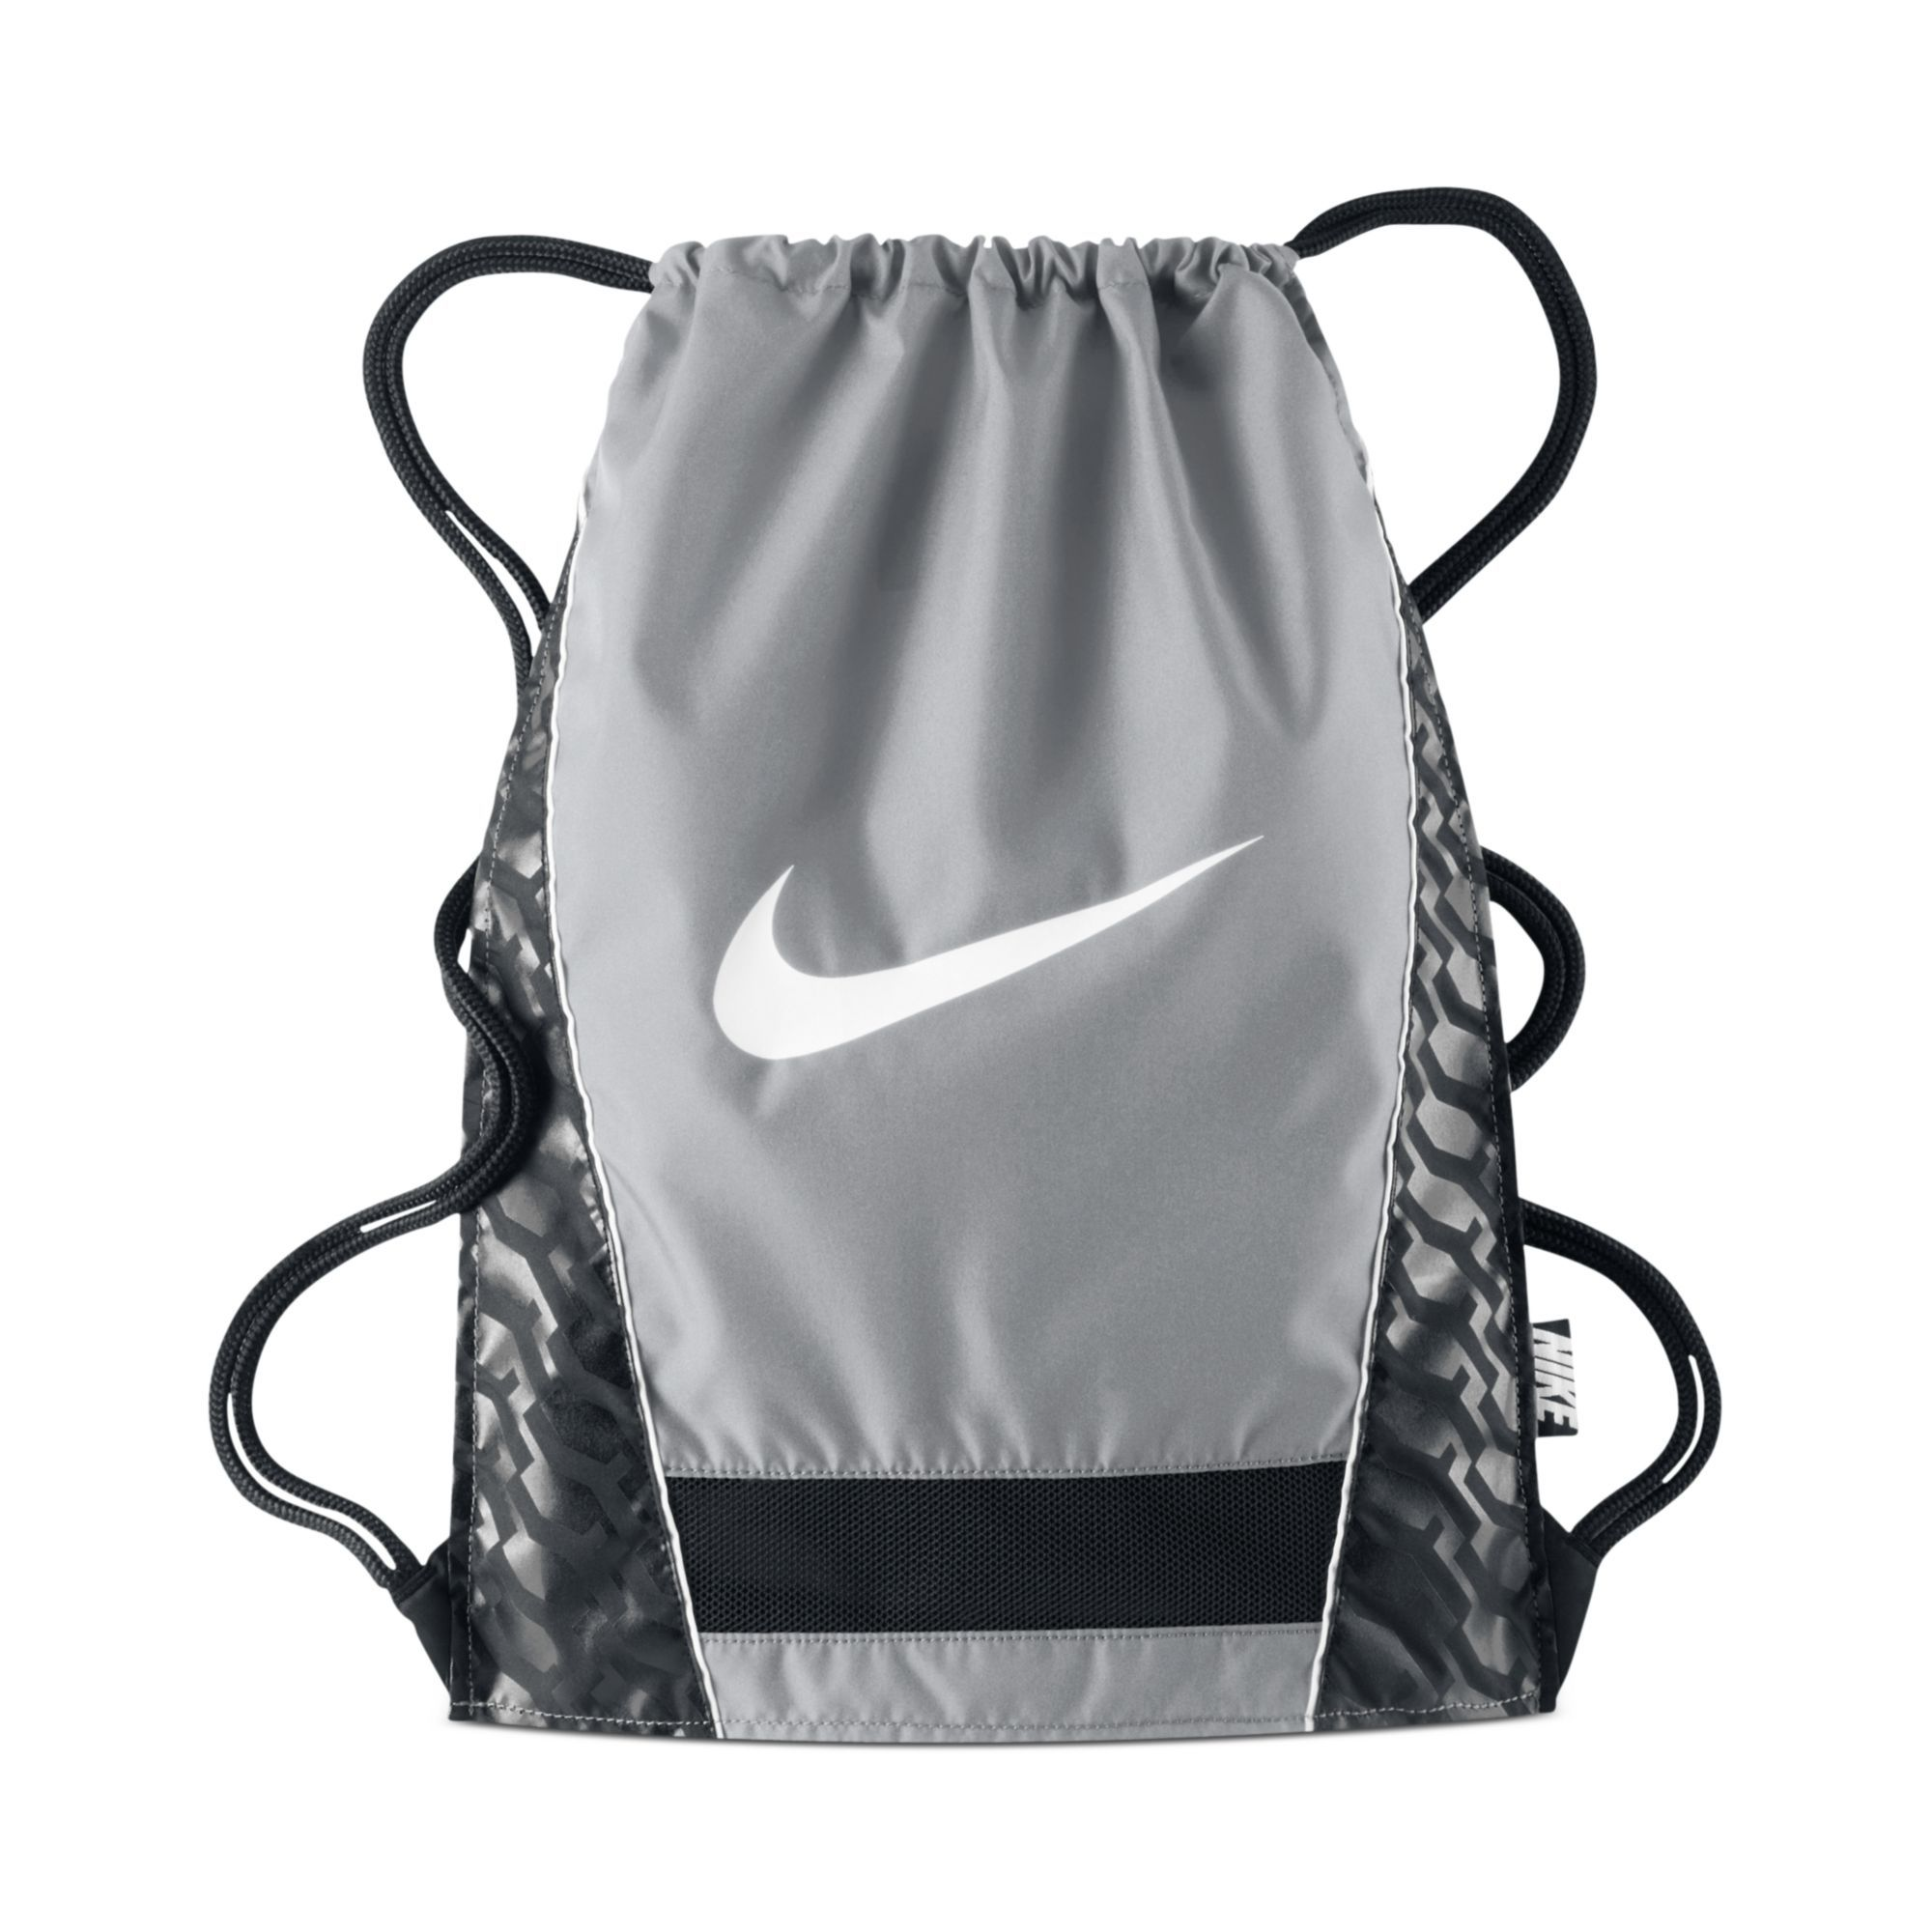 Nike Brasilia Gym Sack | Gym Bags | Pinterest | Gym